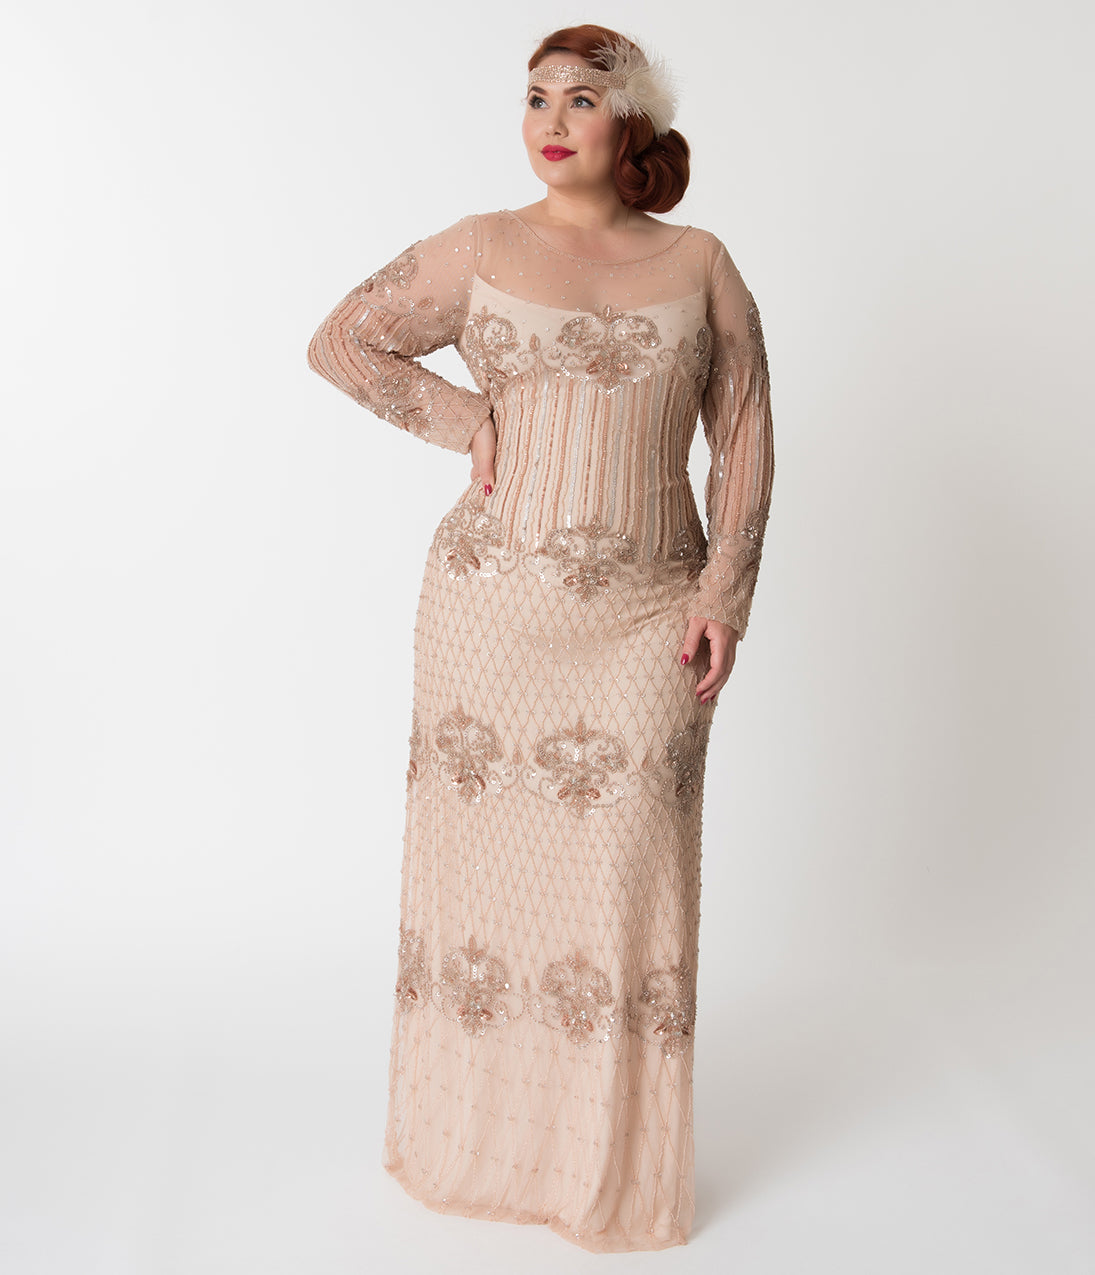 1930s Evening Dresses | Old Hollywood Dress Plus Size Blush Pink Embellished Mesh Long Sleeve Dolores Flapper Dress $218.00 AT vintagedancer.com